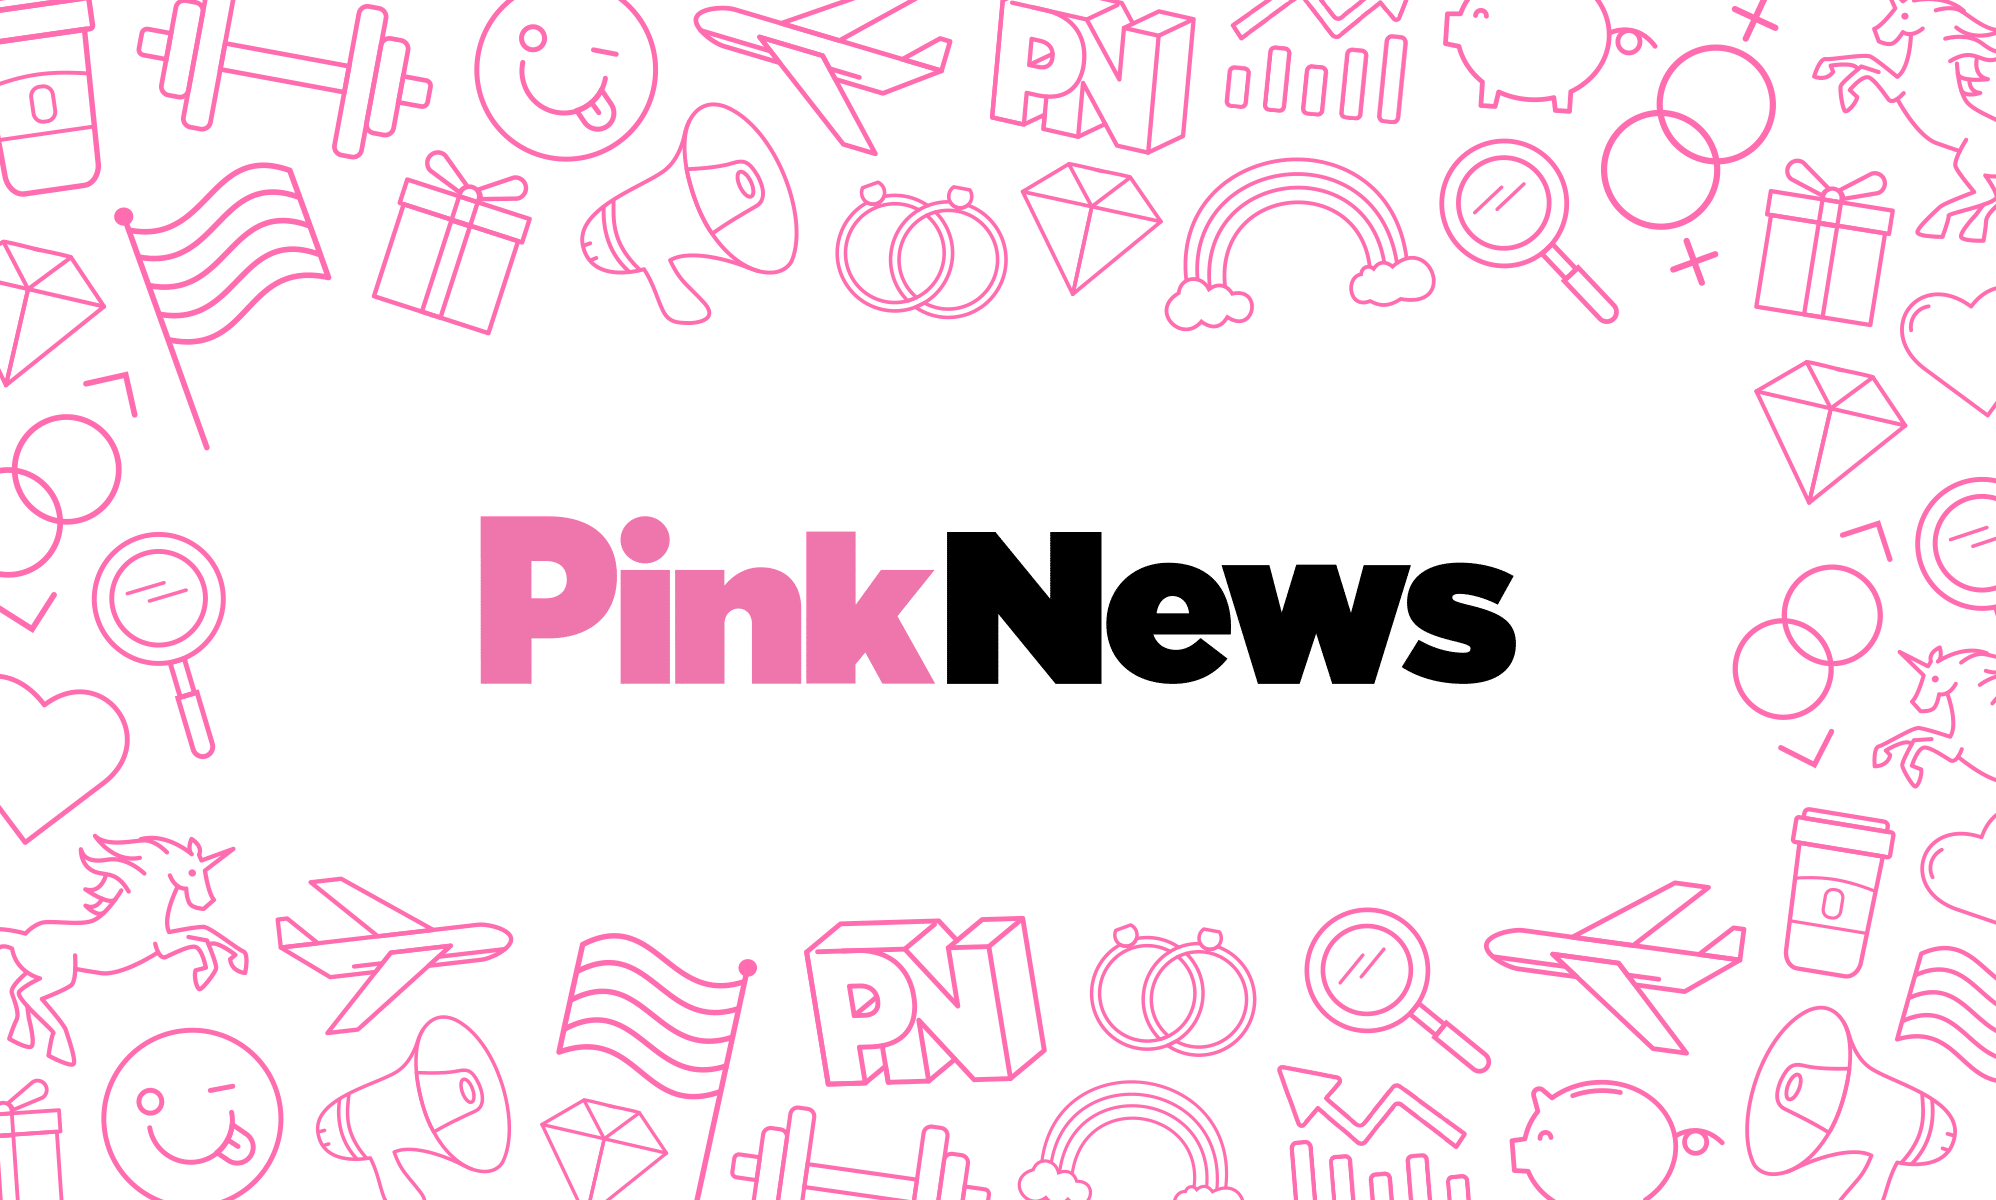 PinkNews to host interactive election debate chaired by Evan Davis